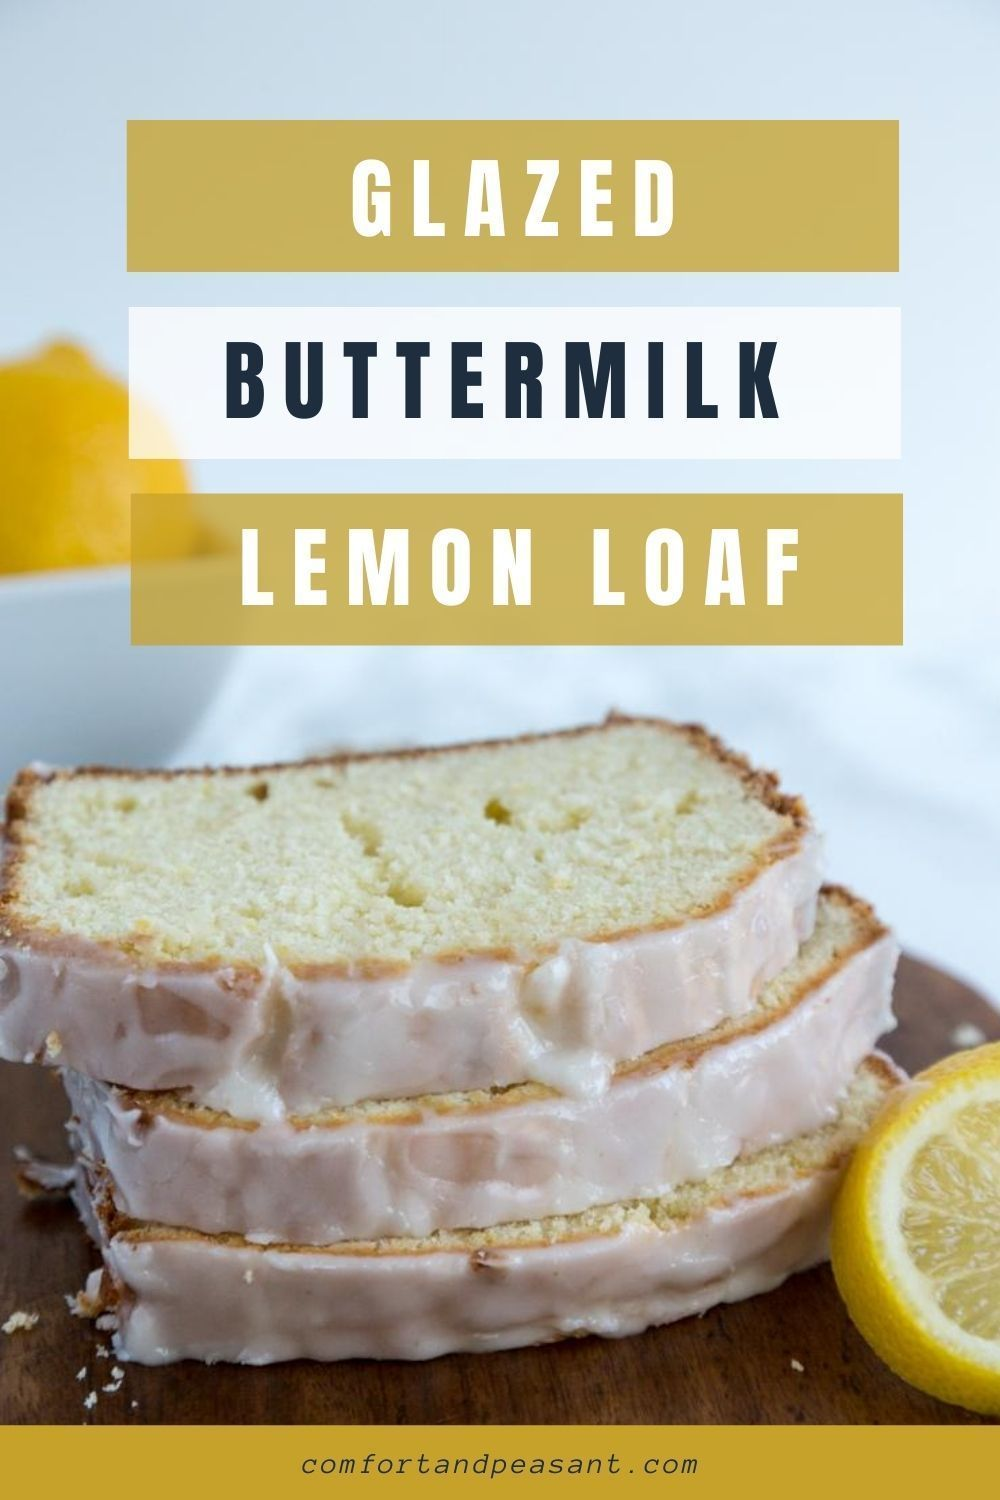 Glazed Buttermilk Lemon Loaf Comfort Peasant Recipe In 2020 Lemon Loaf Gelato Recipe Dessert Recipes